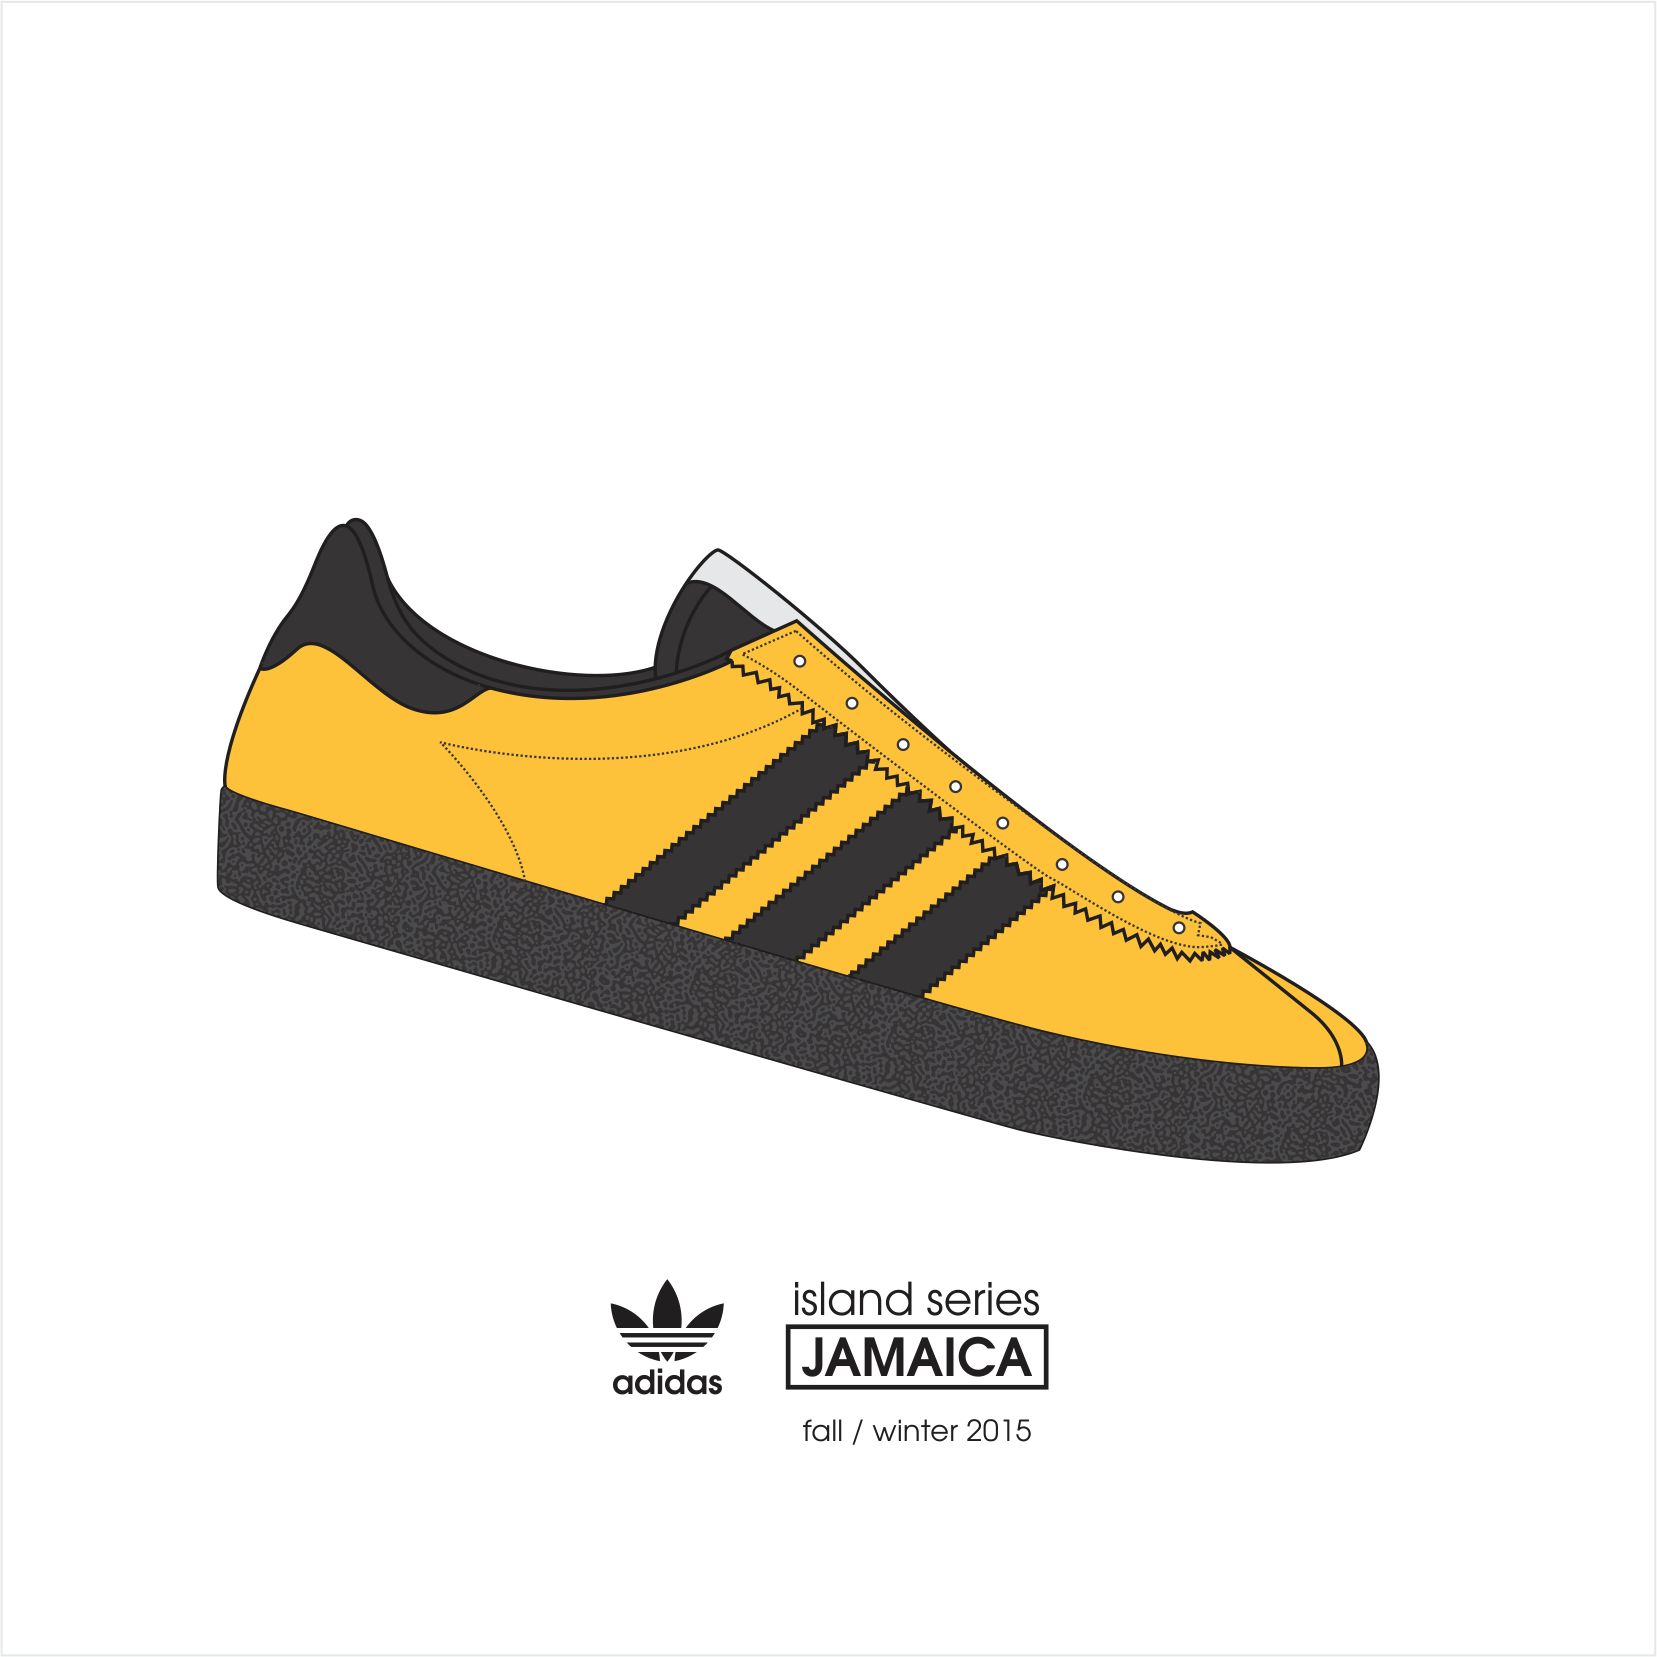 Adidas Jamaica Island Series Fall Winter 2015 Kicks